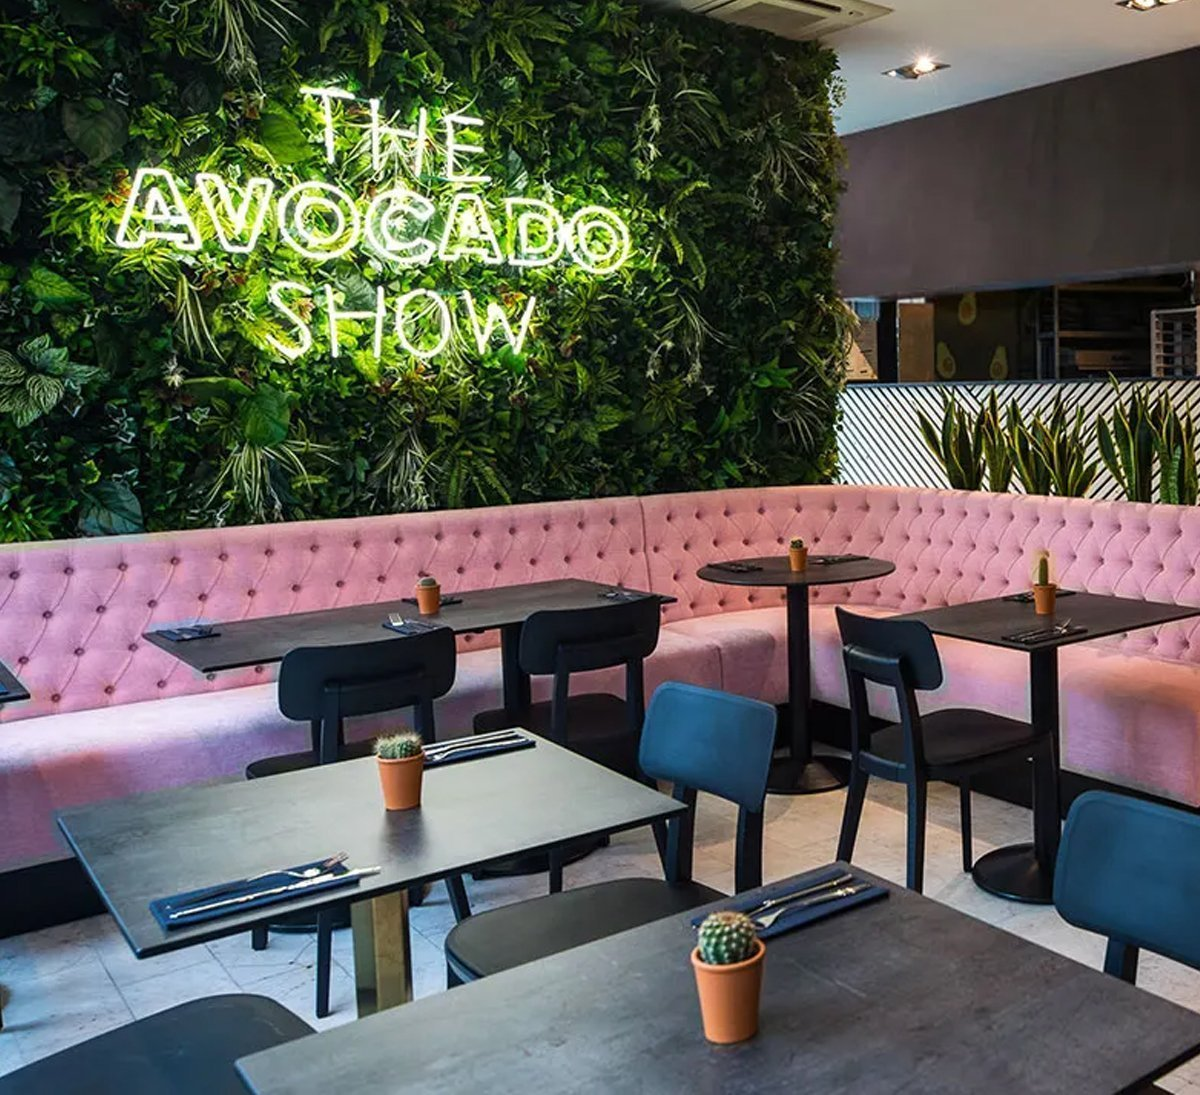 Avocado Restaurants